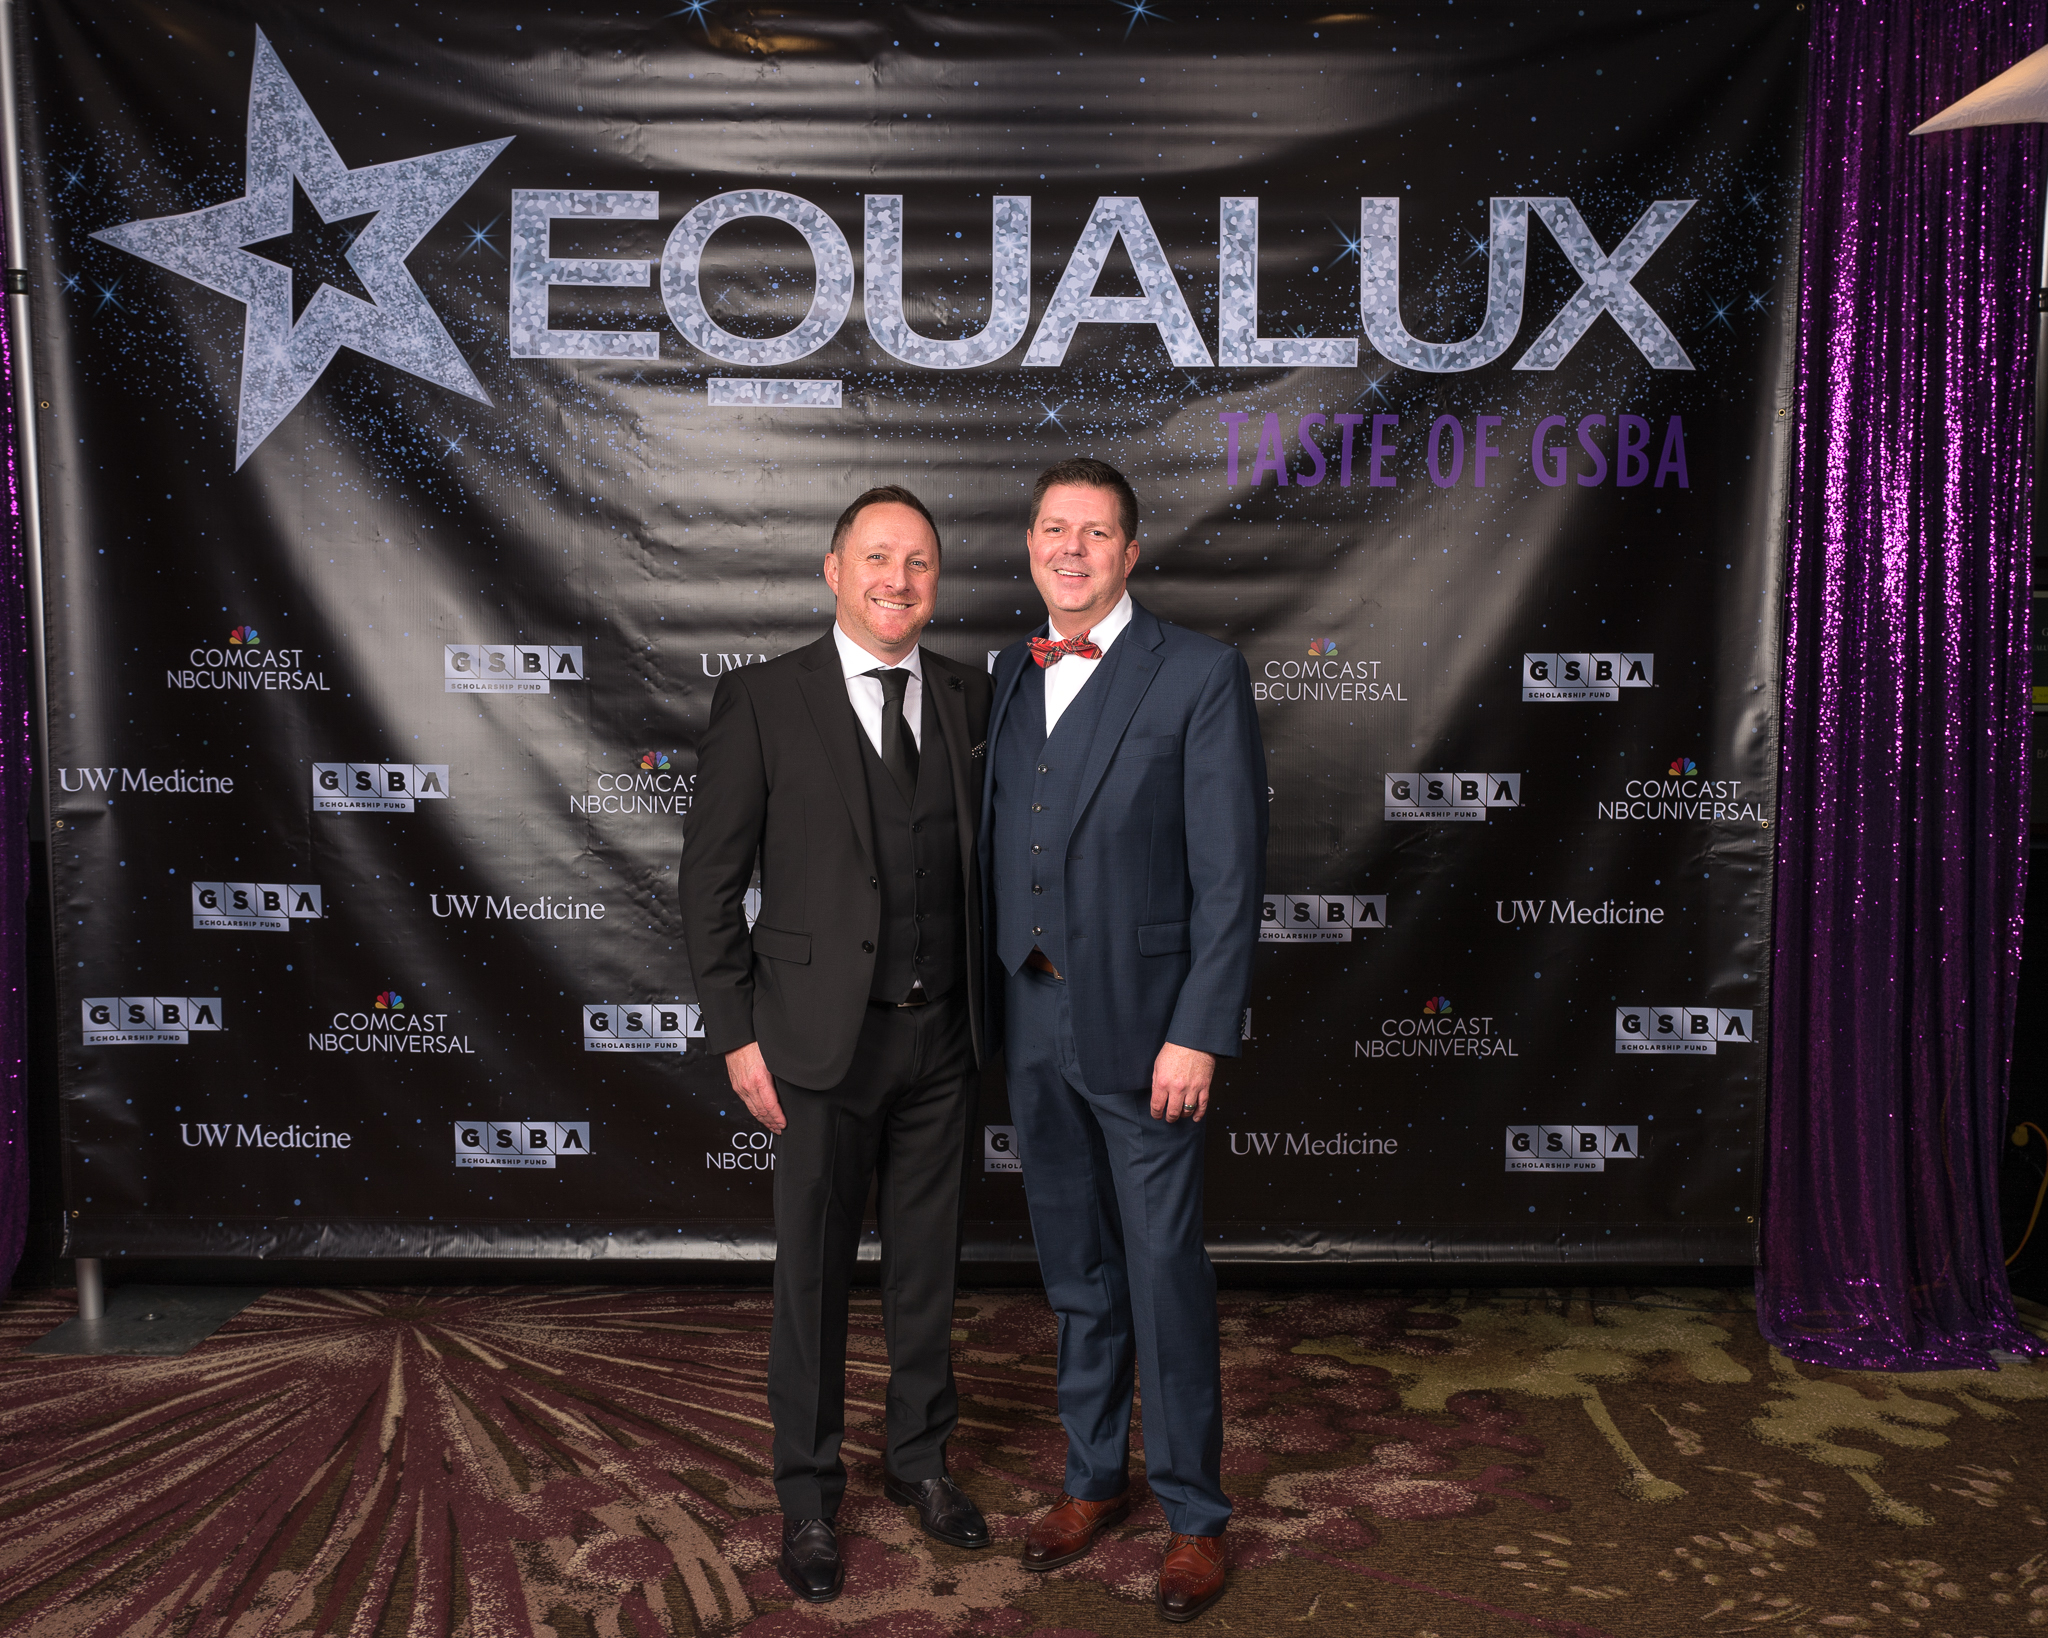 111718_GSBA EQUALUX at The Westin Seattle (Credit- Nate Gowdy)-194.jpg